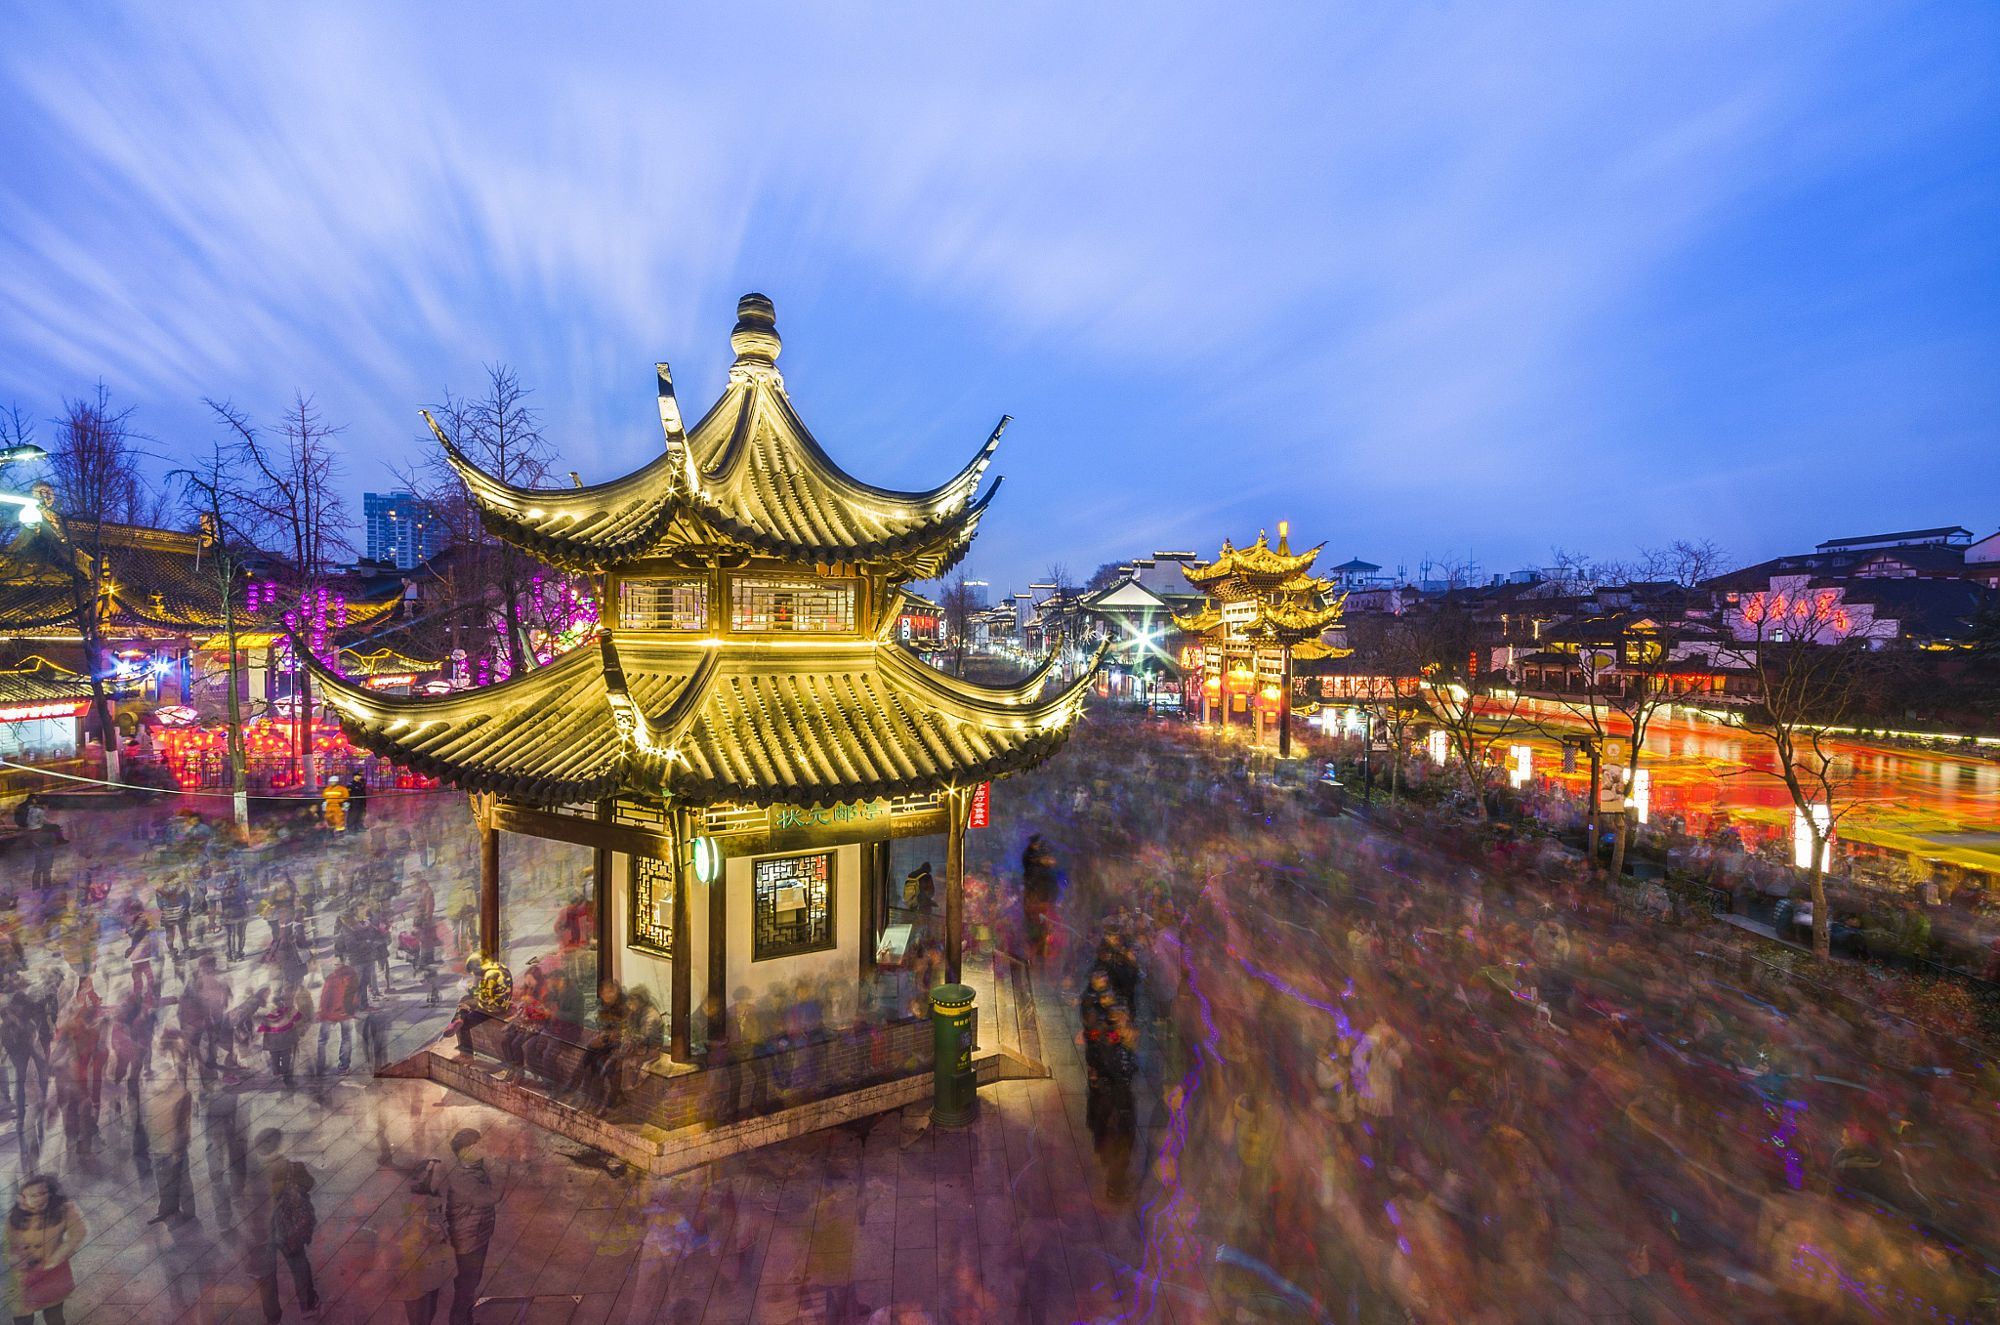 Every Chinese New Year,Nanjing Confucius Temple is a